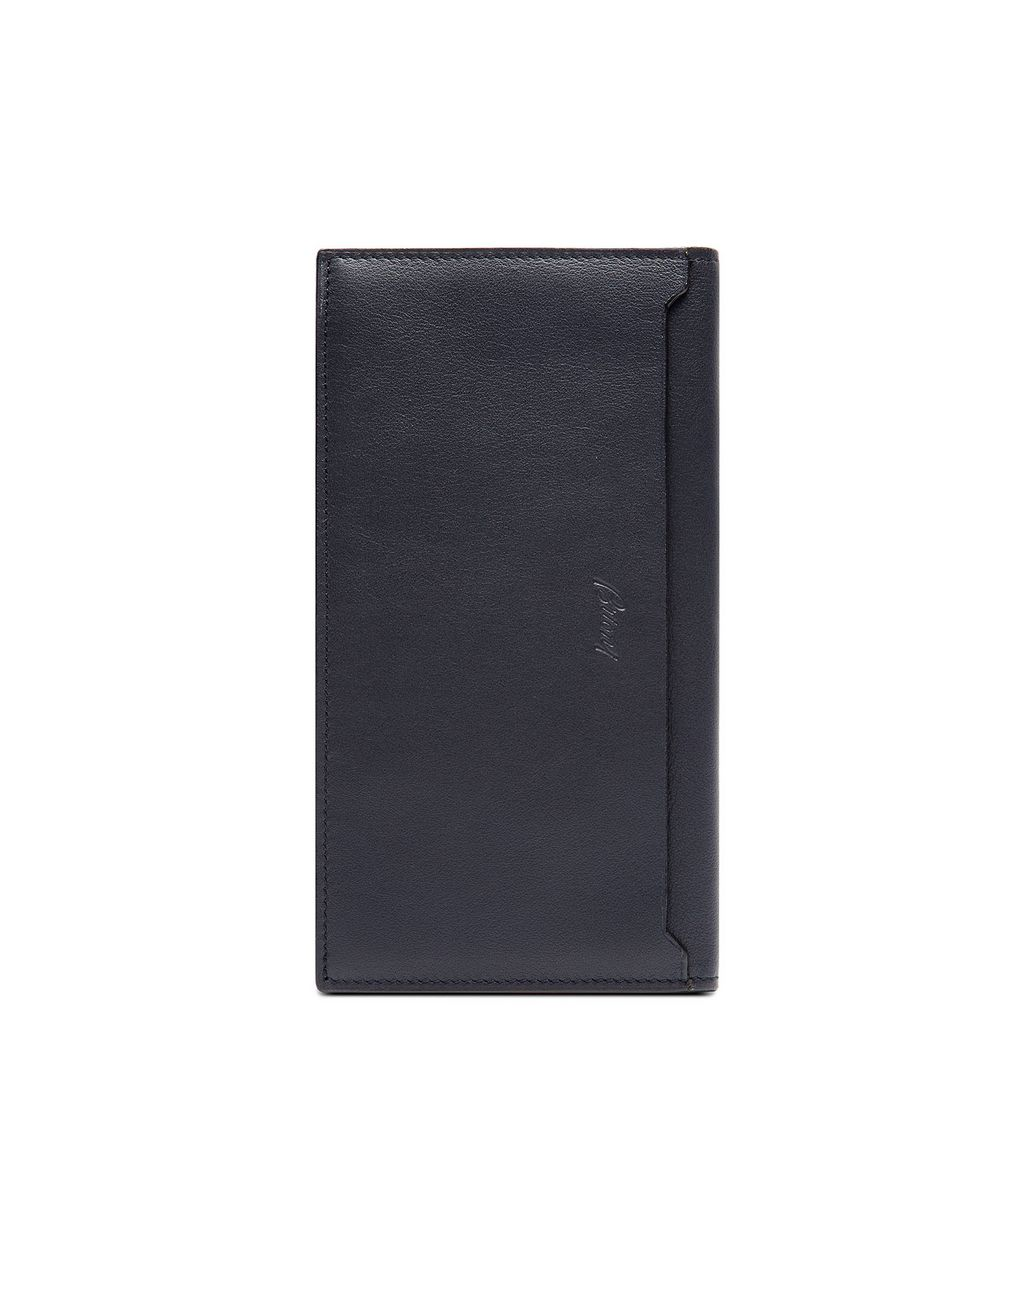 BRIONI Blue and Black Continental Wallet in Smooth Calfskin Leather Goods Man r